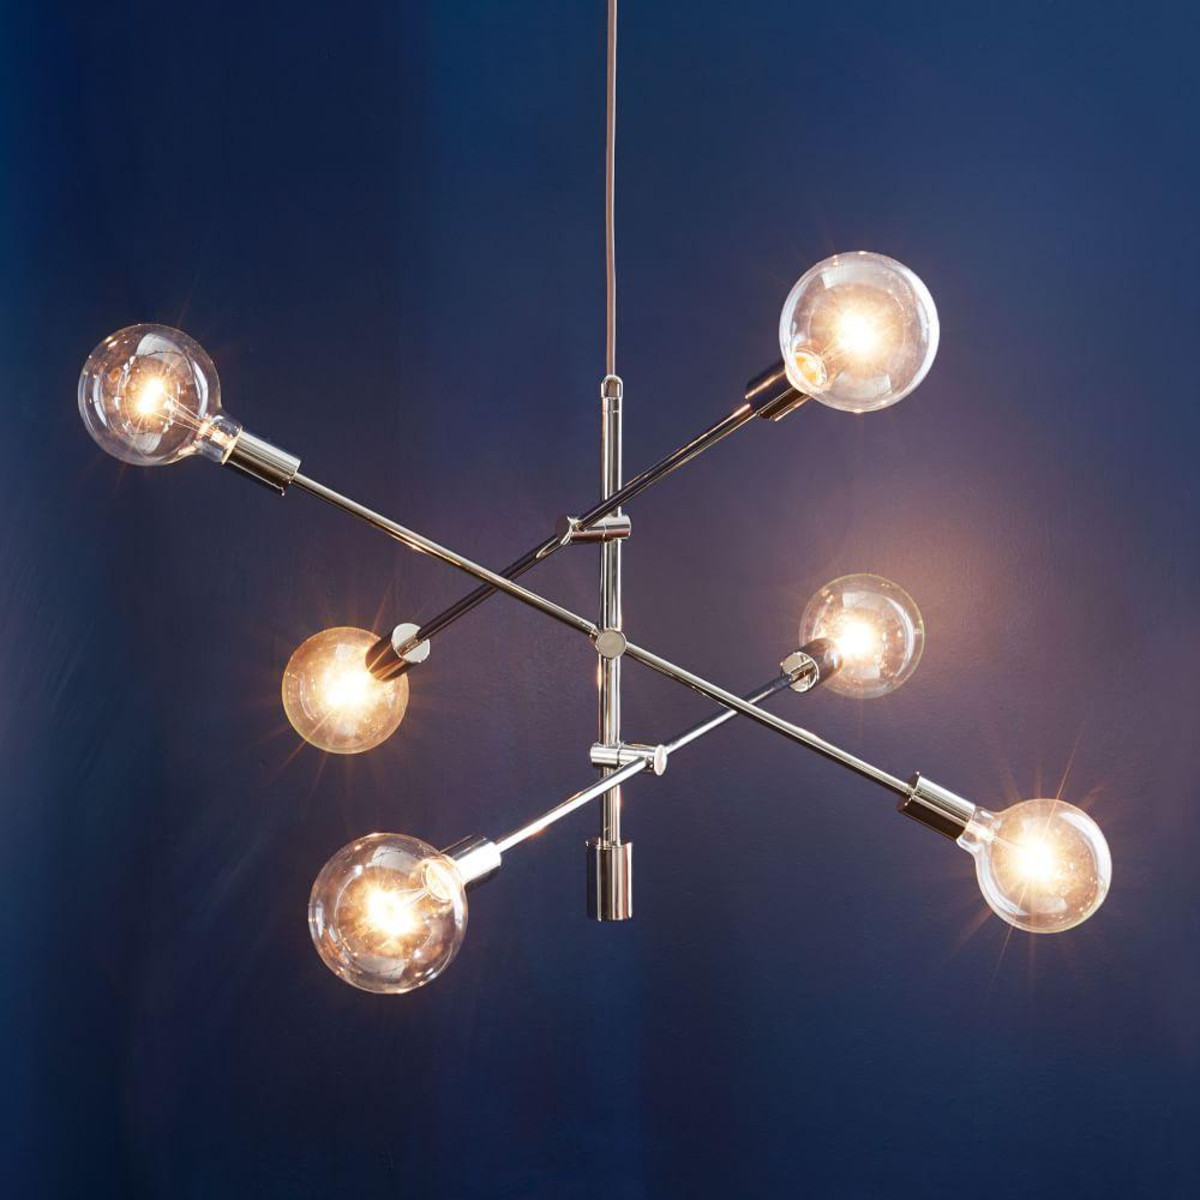 Rectangular Capiz Chandelier | Light Fixtures Pottery Barn | West Elm Chandelier